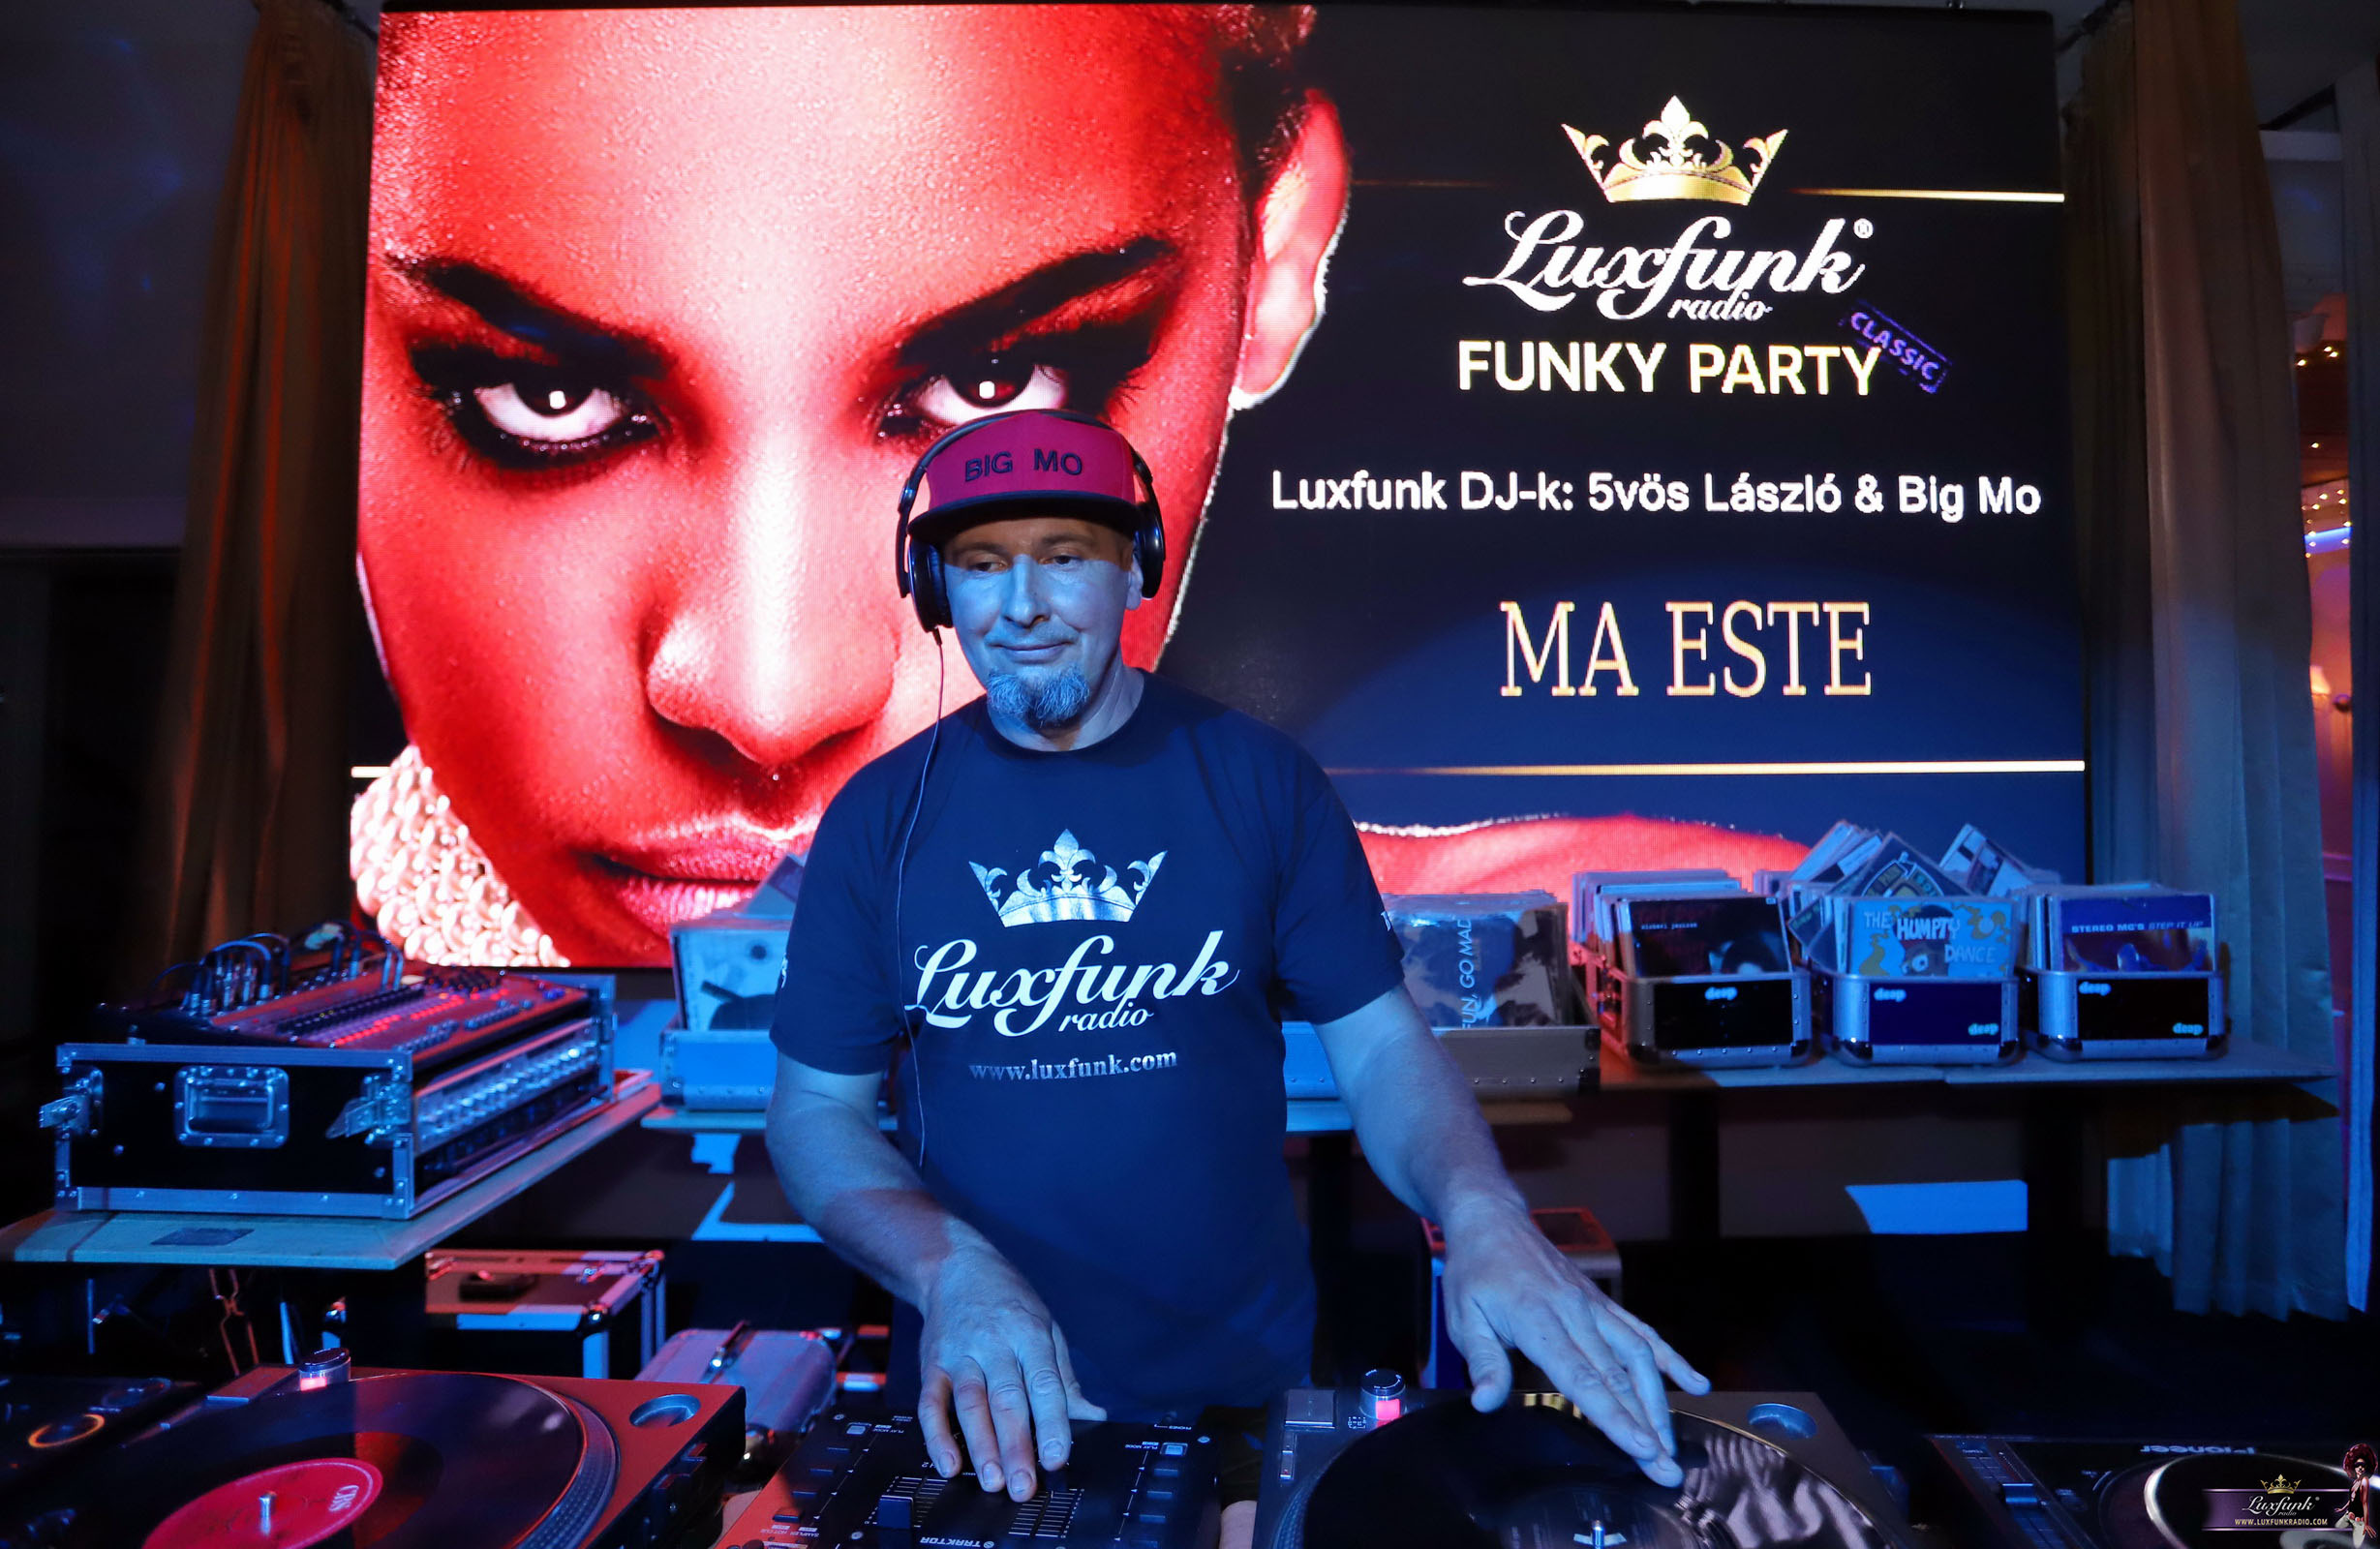 luxfunk-radio-funky-party-200912-symbol-budapest_44